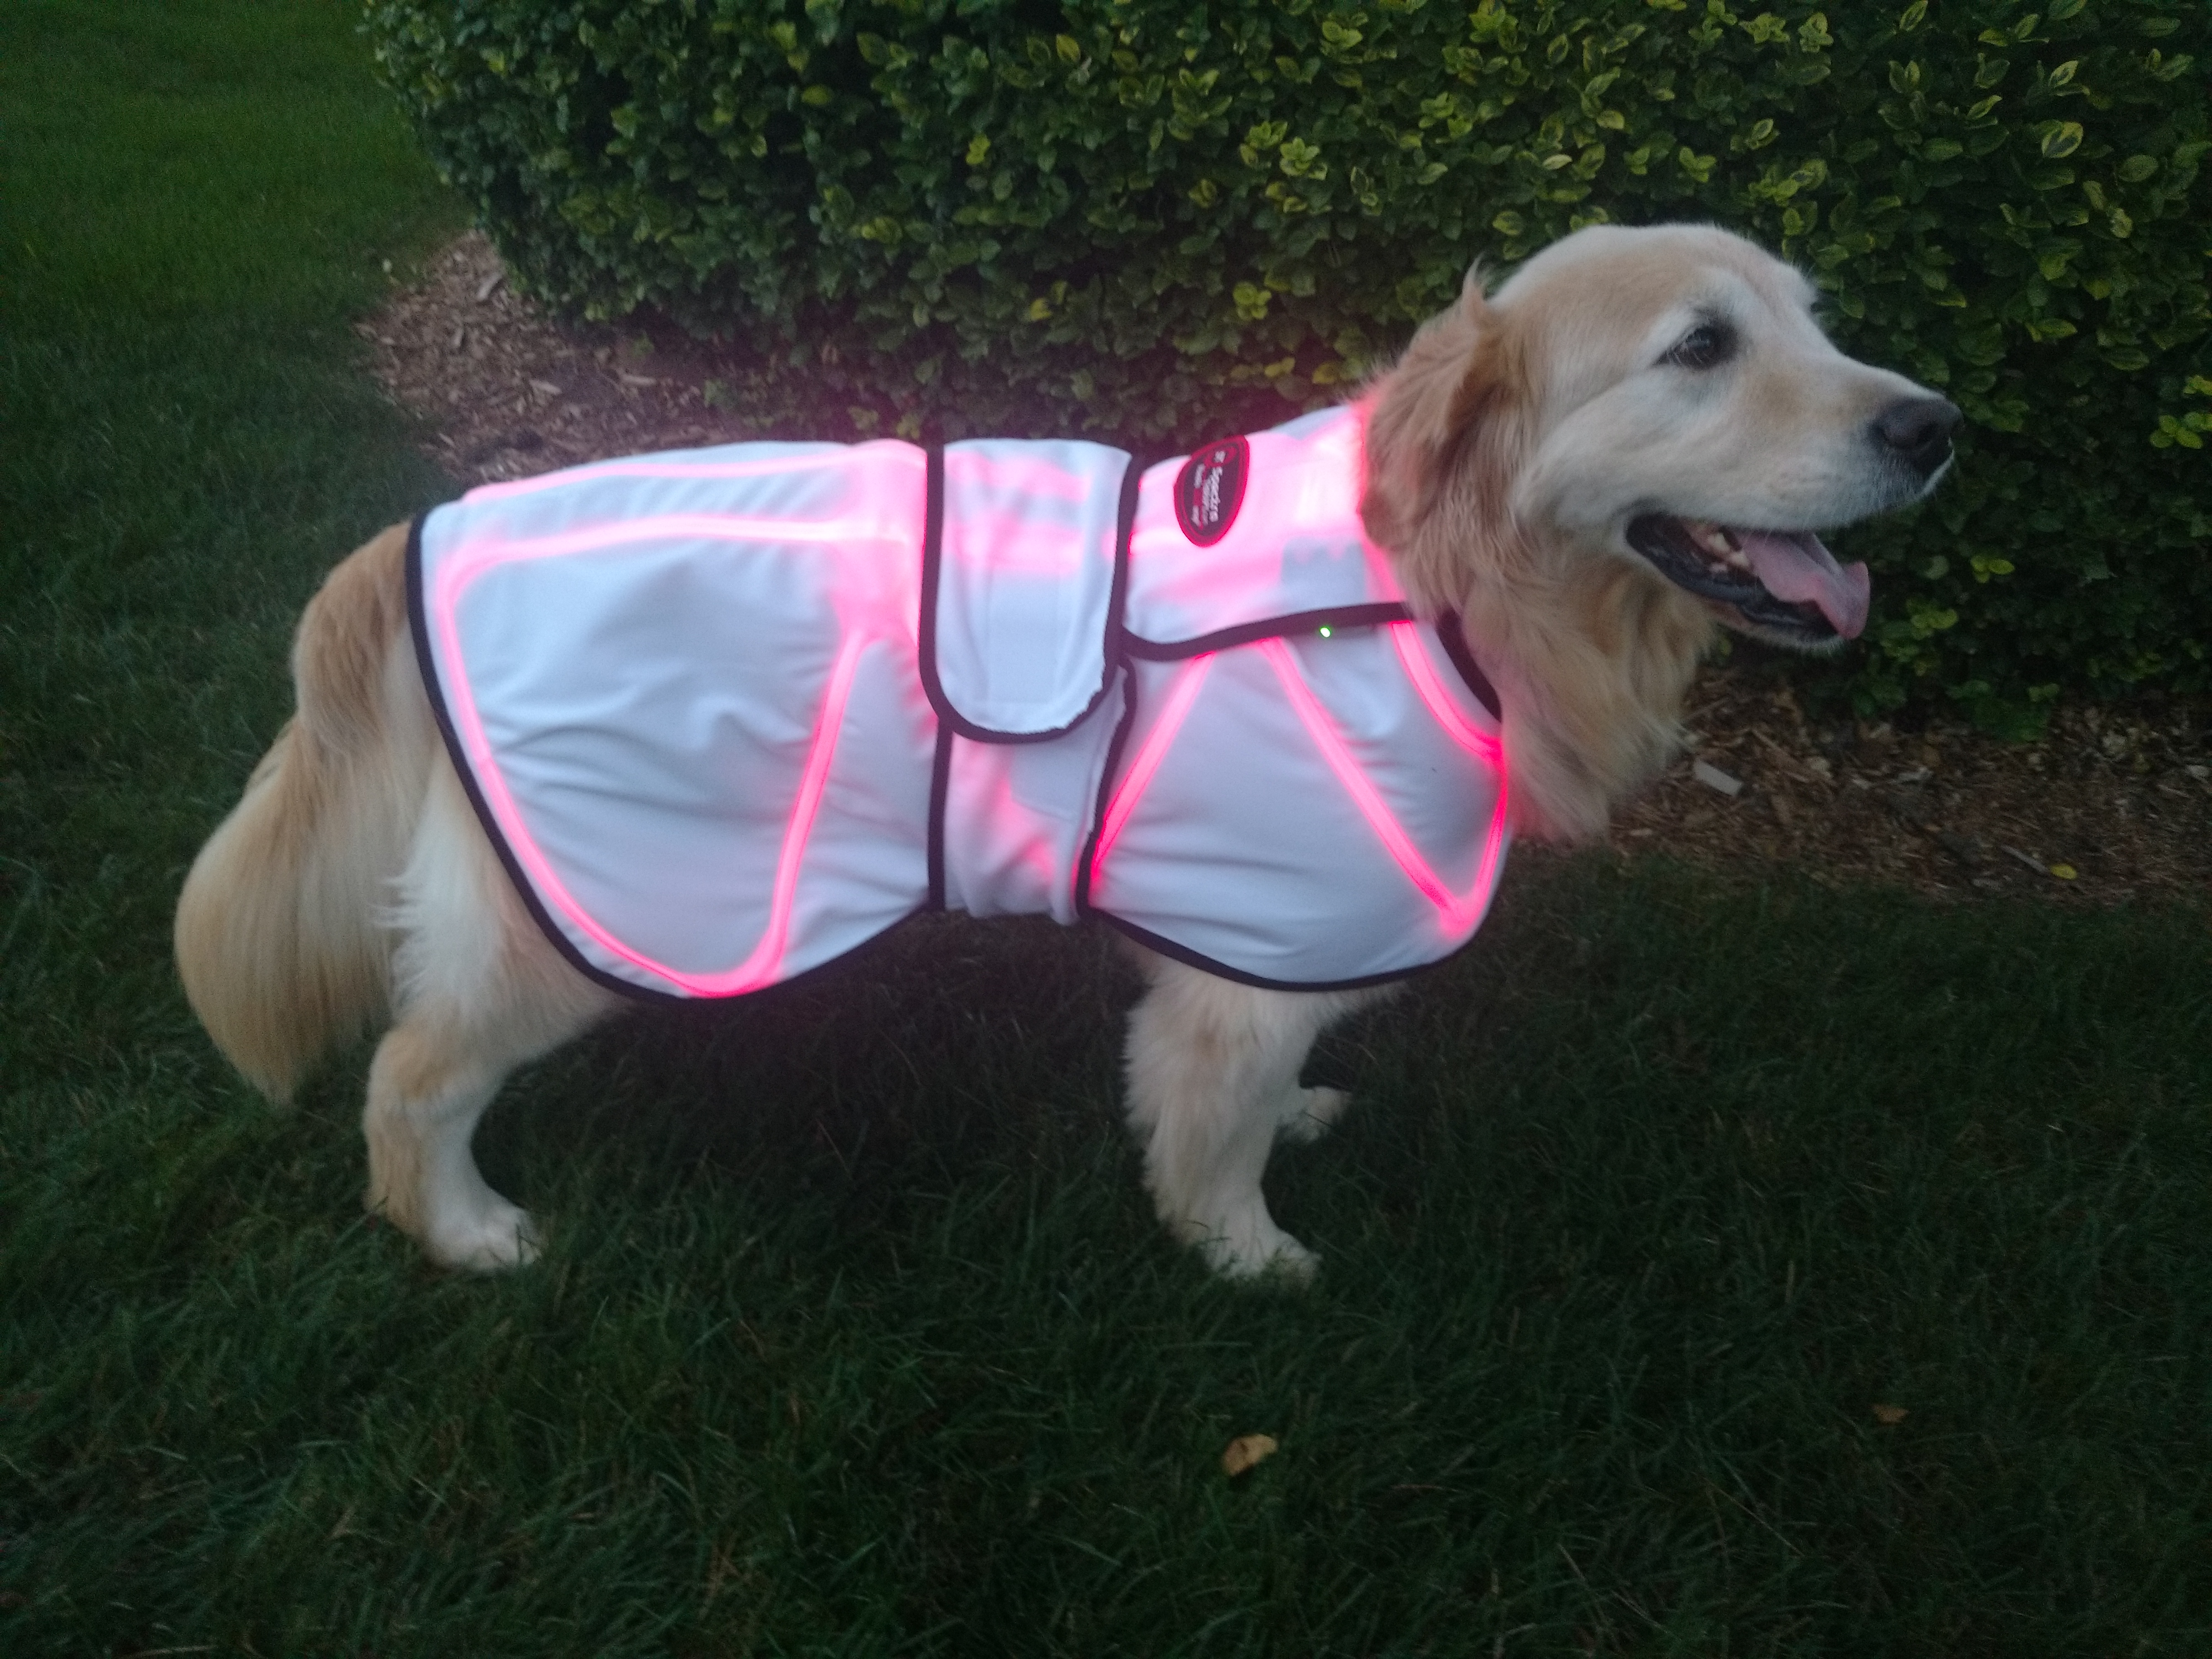 Laserwrap Xlarge Dog Coats Coat Only Spectra Therapy Canine